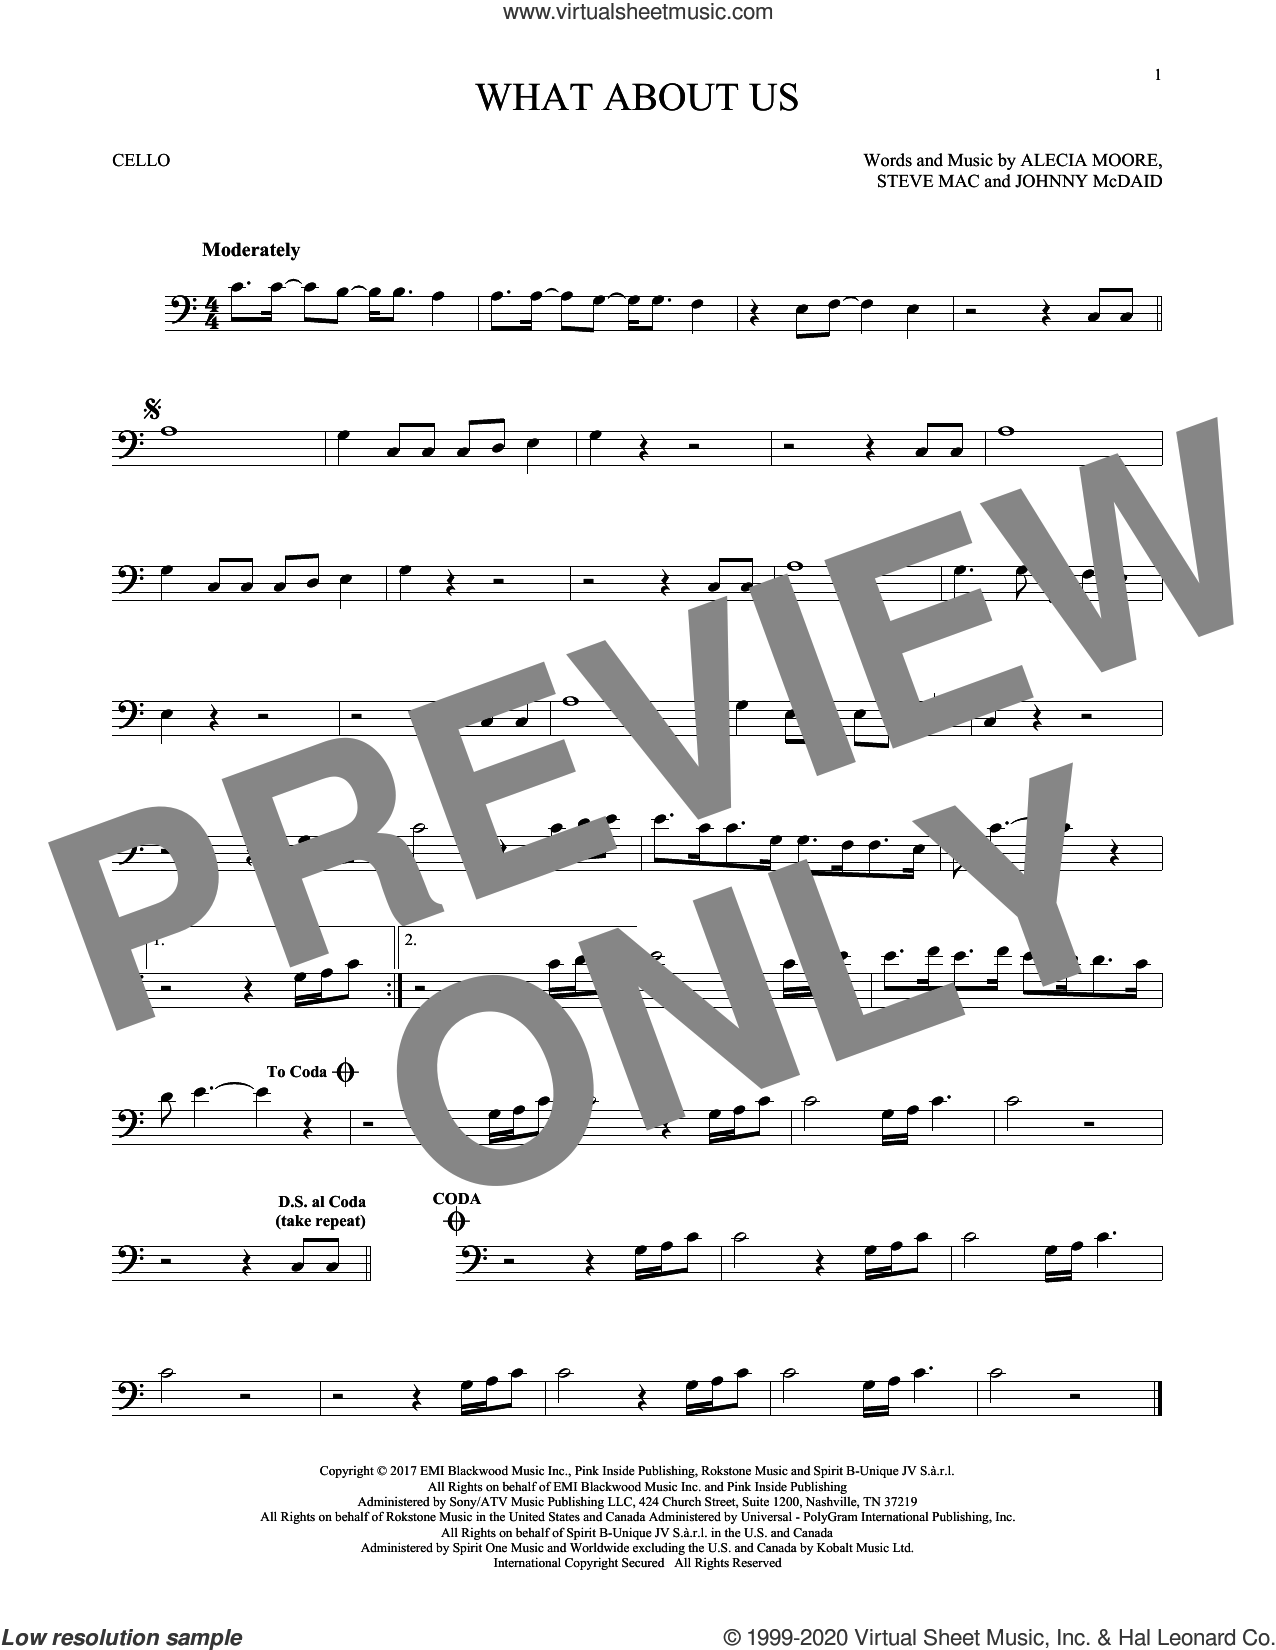 What About Us sheet music for cello solo by Steve Mac, Miscellaneous, Alecia Moore and Johnny McDaid, intermediate skill level